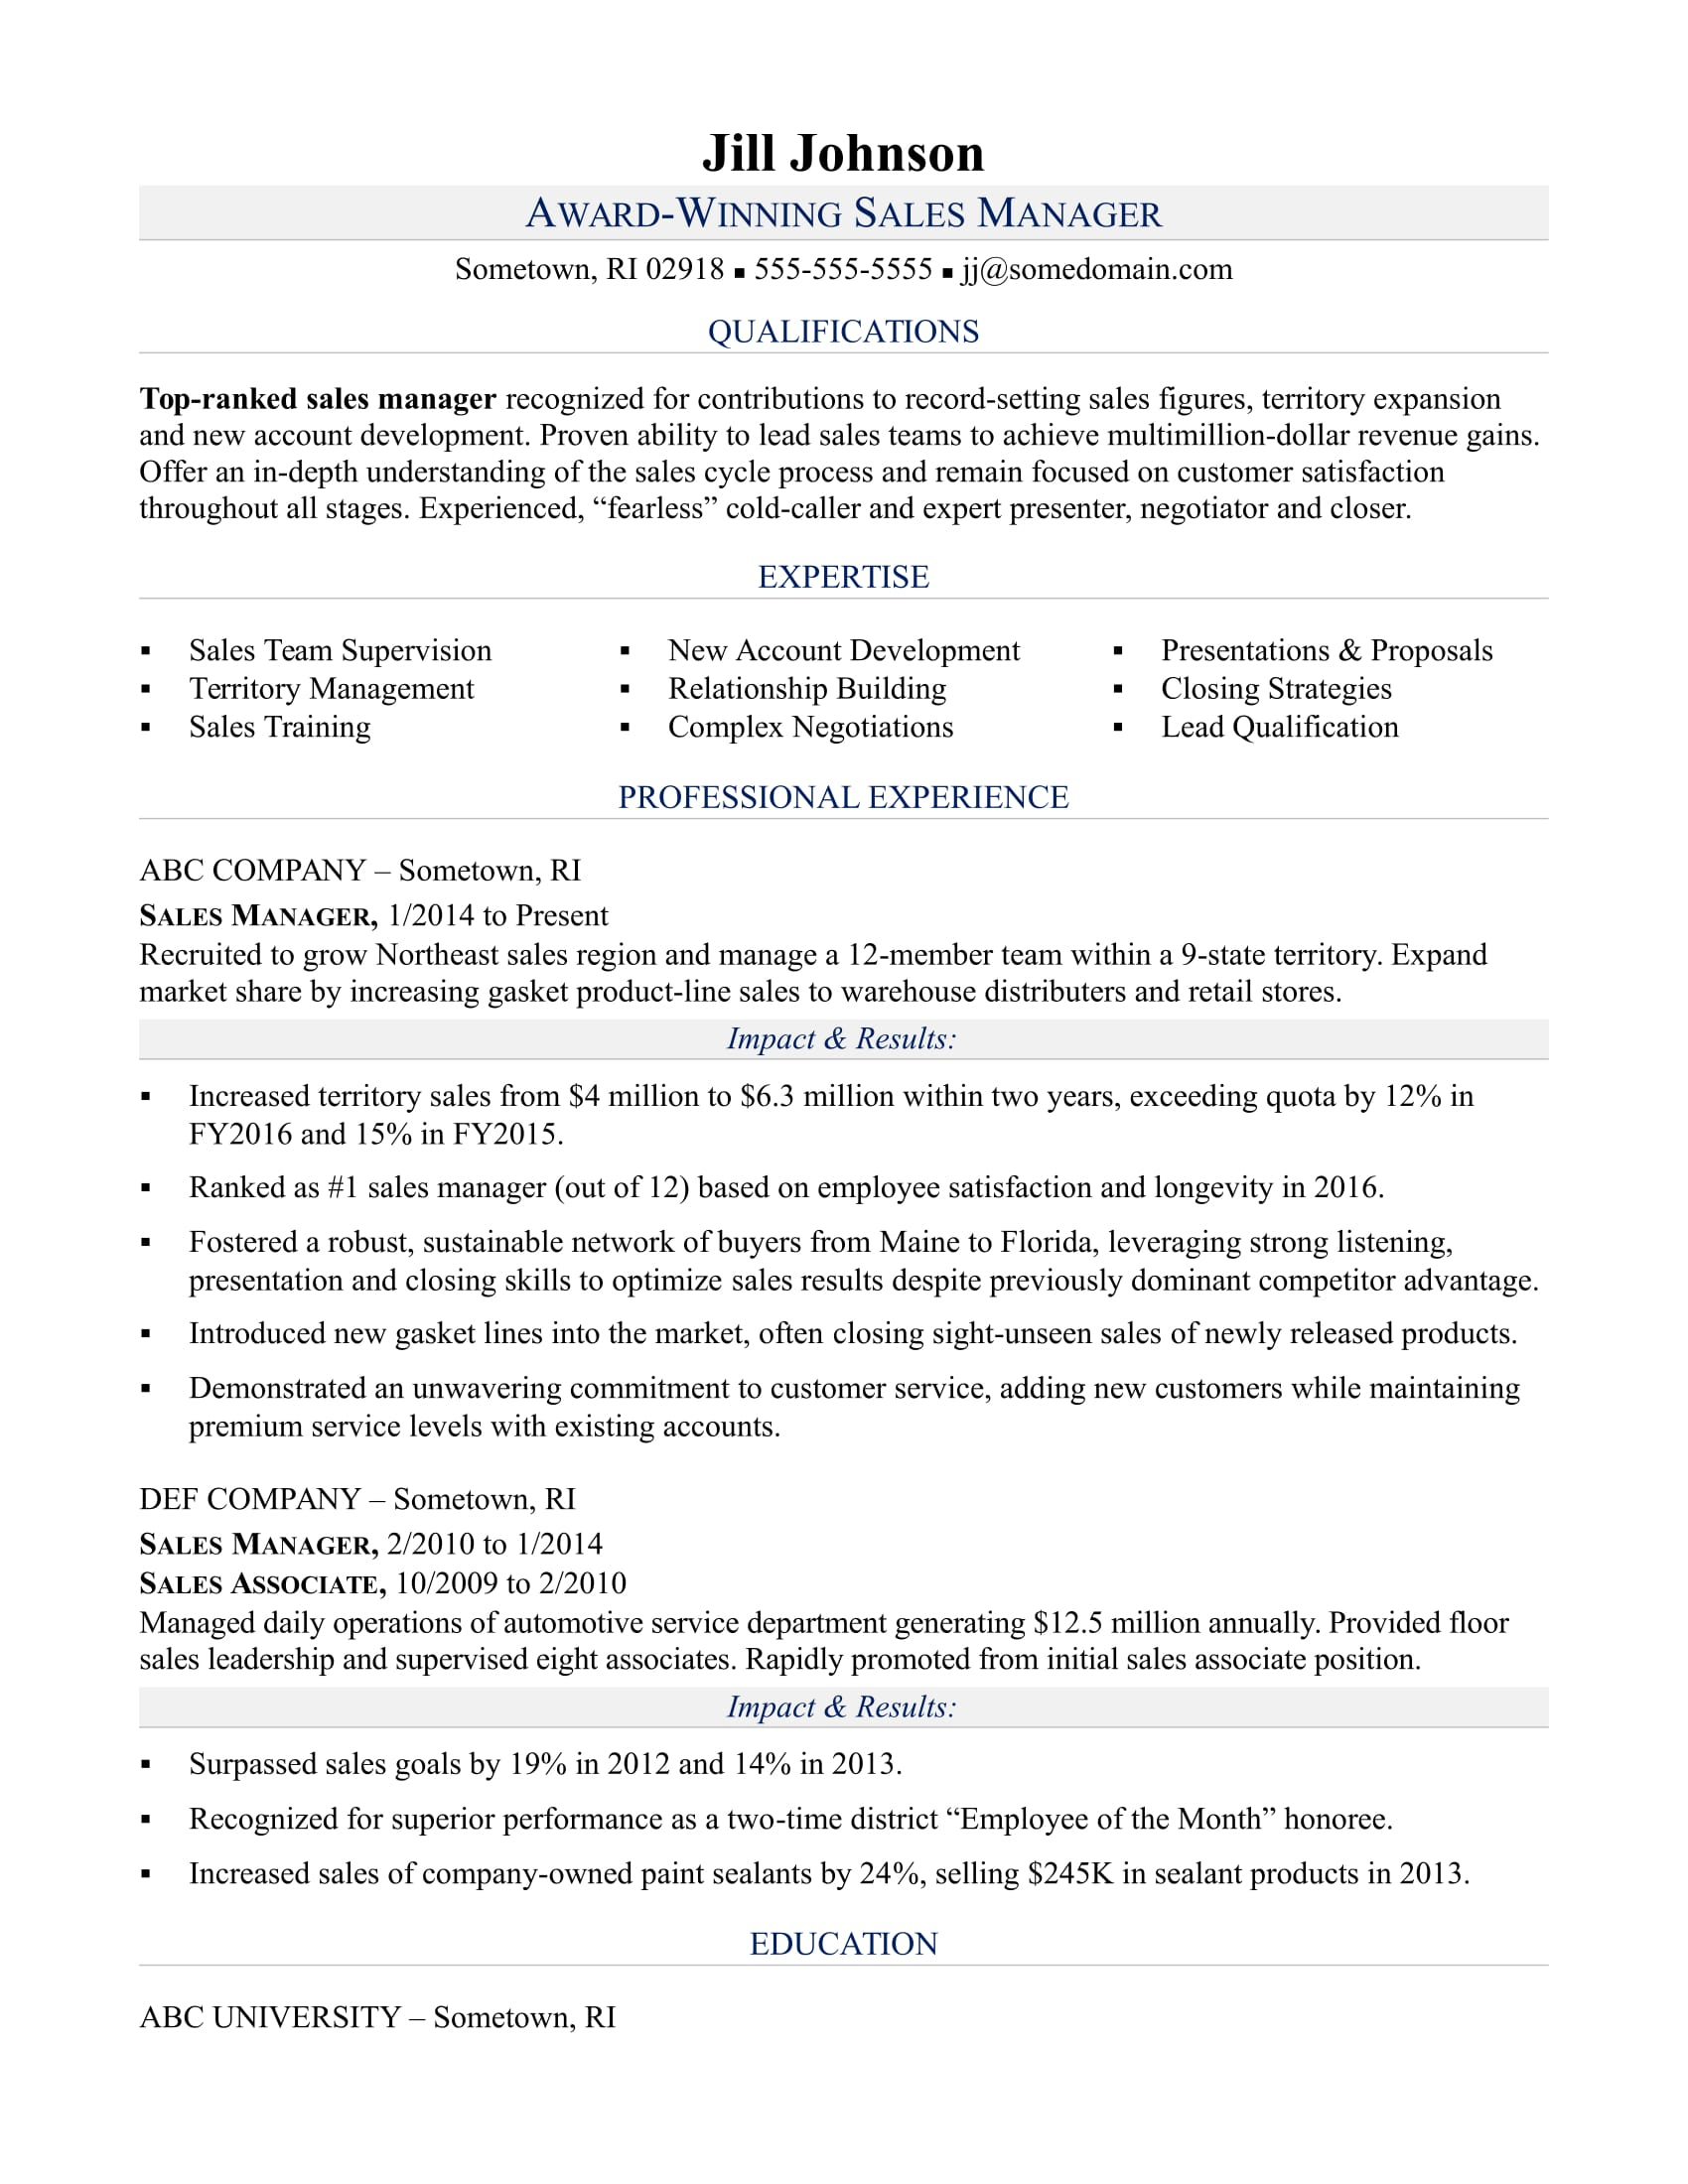 Sample Resume For A Sales Manager  Manager Resume Examples